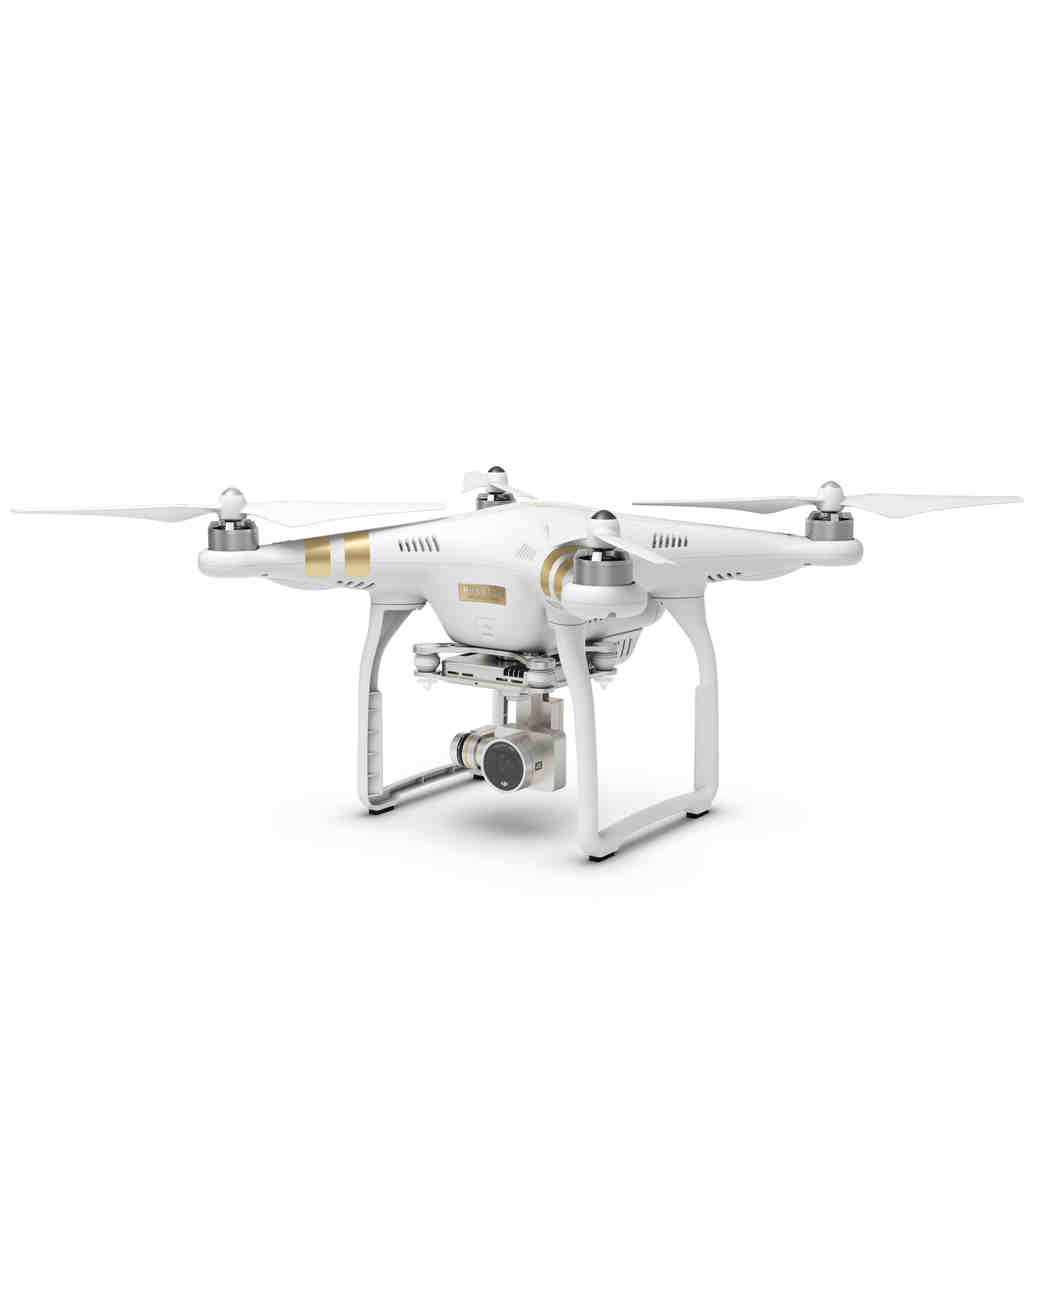 fathers-gift-guide-tech-drone-0515.jpg